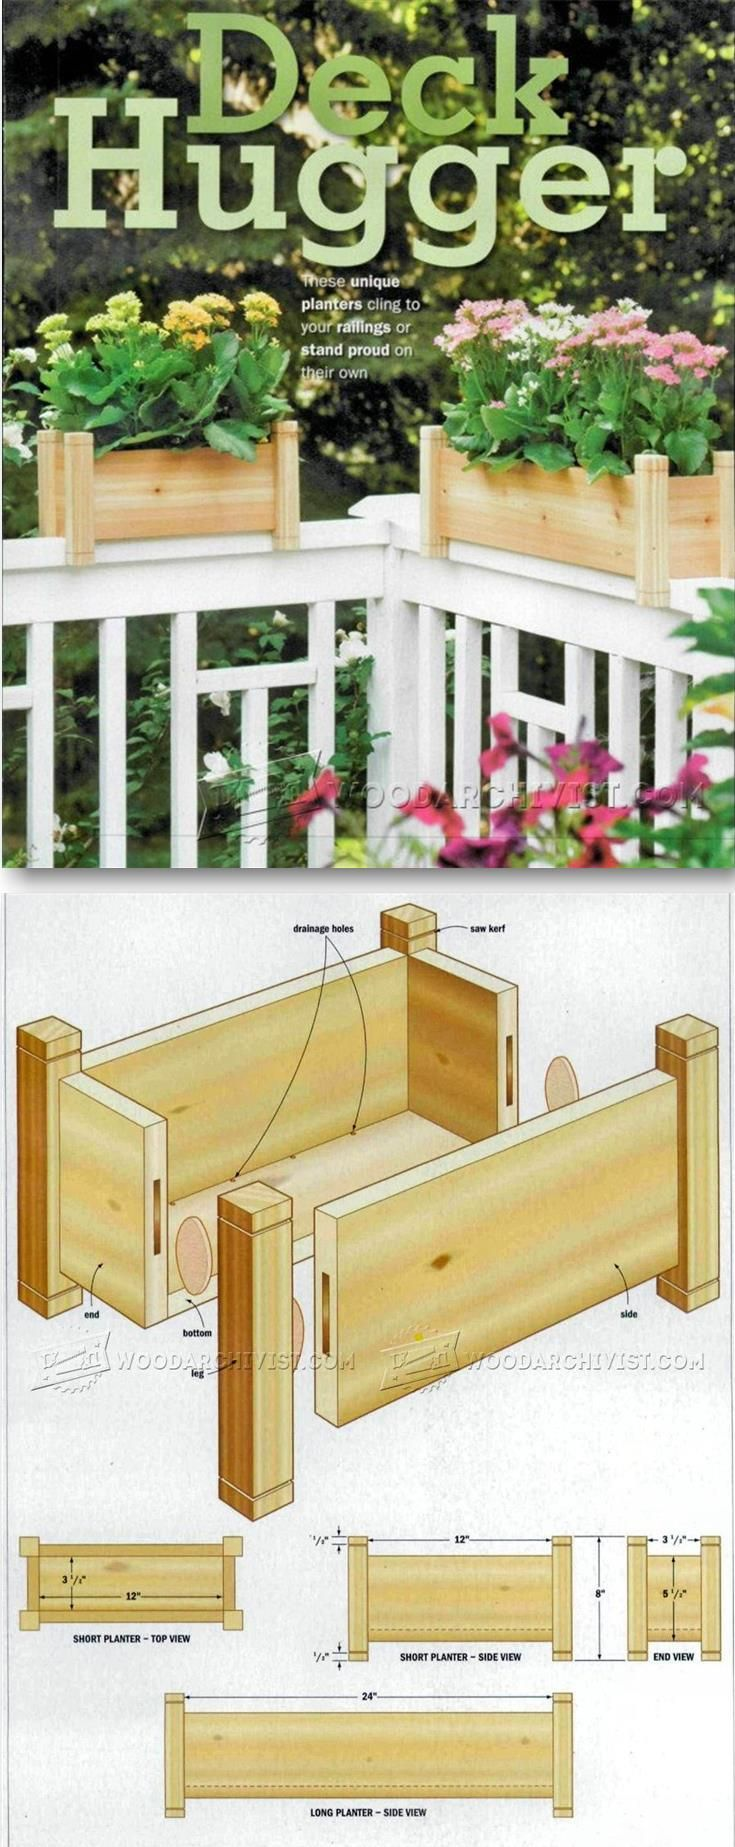 How to build a planter box for a deck - 17 Best Ideas About Deck Planters On Pinterest Deck Garden Privacy And Privacy Screens